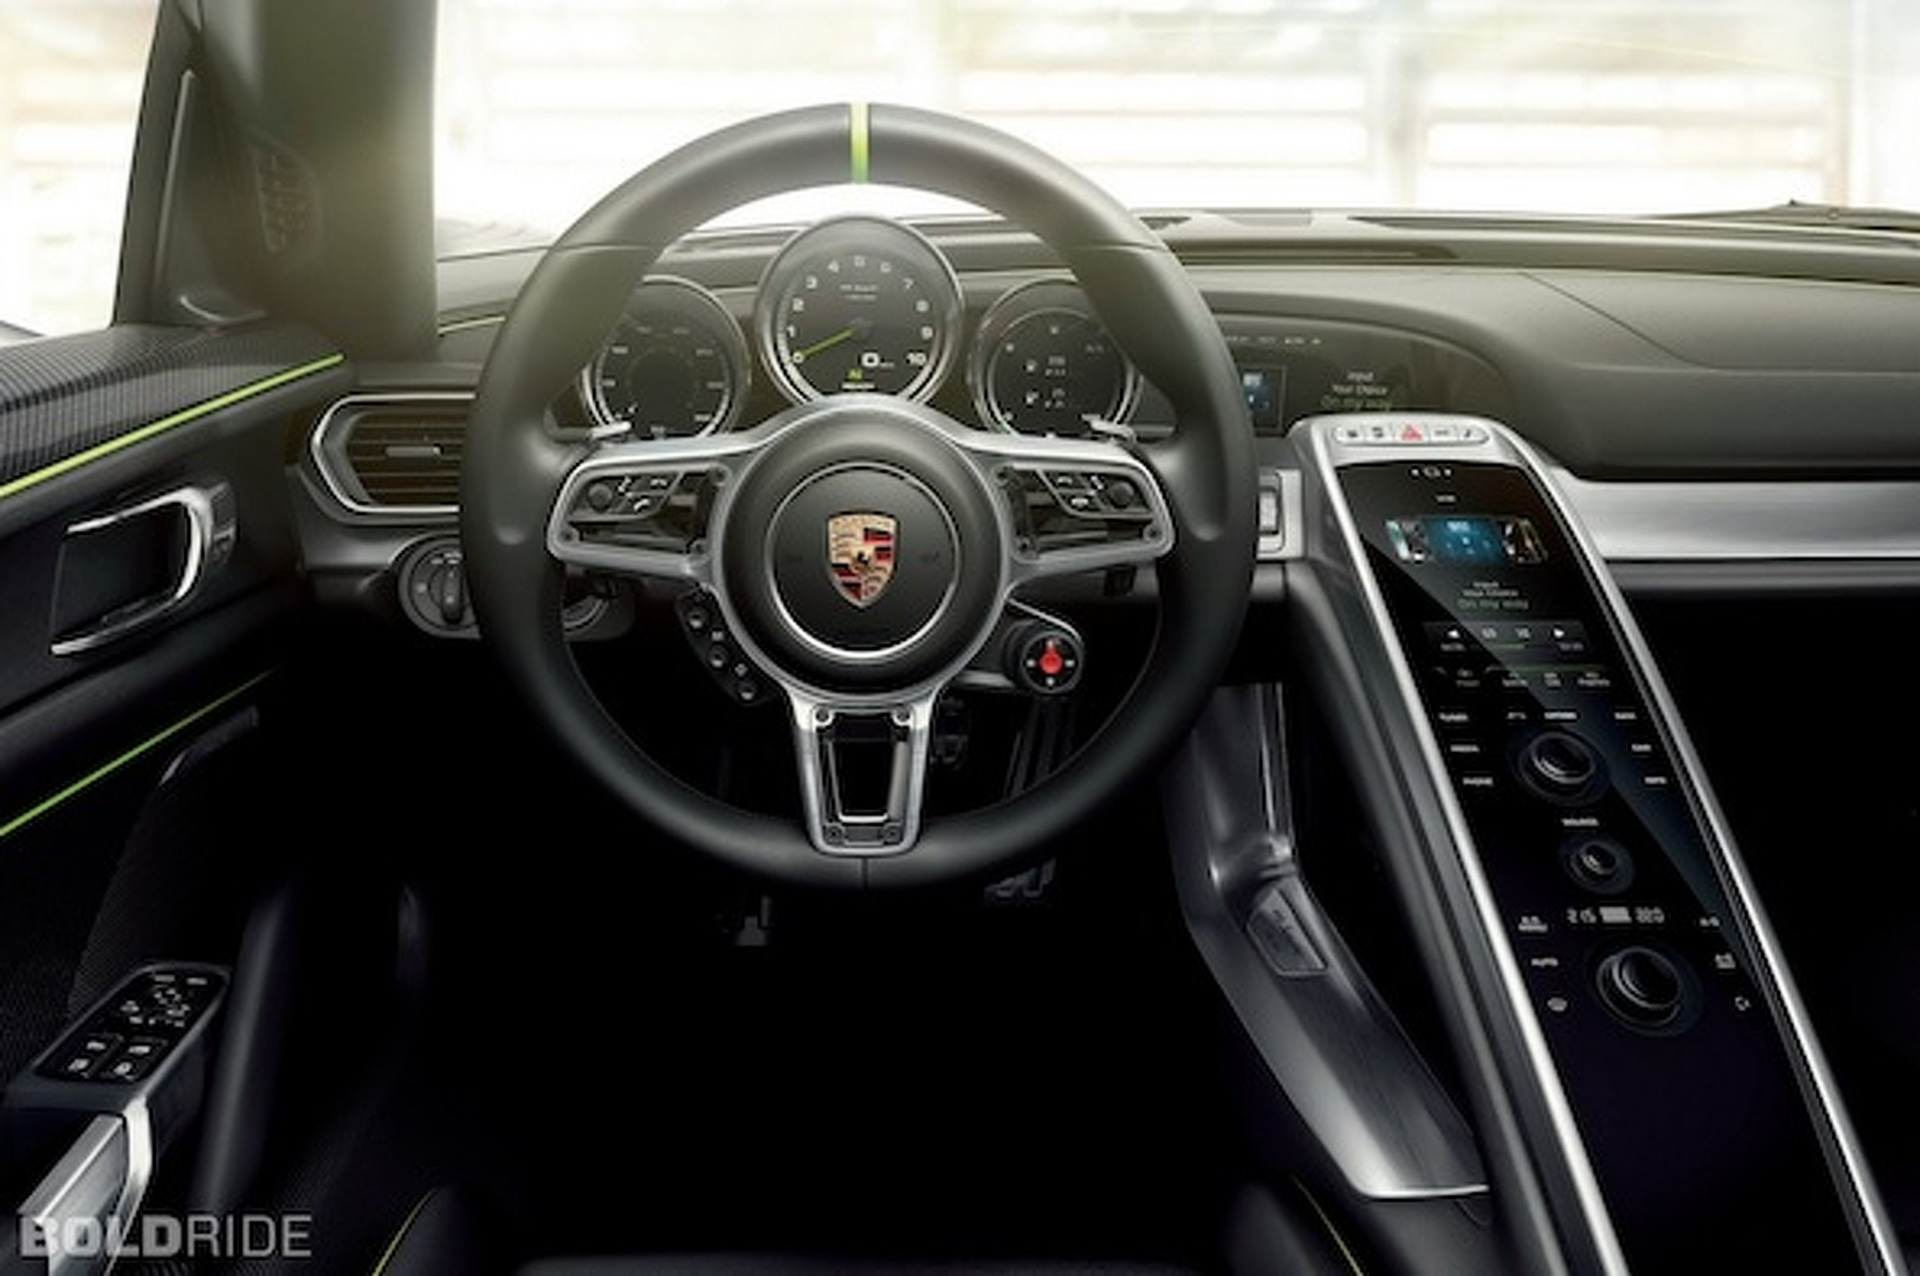 Porsche 918 Spyder Revealed: 887 HP, 78 MPG, $845K